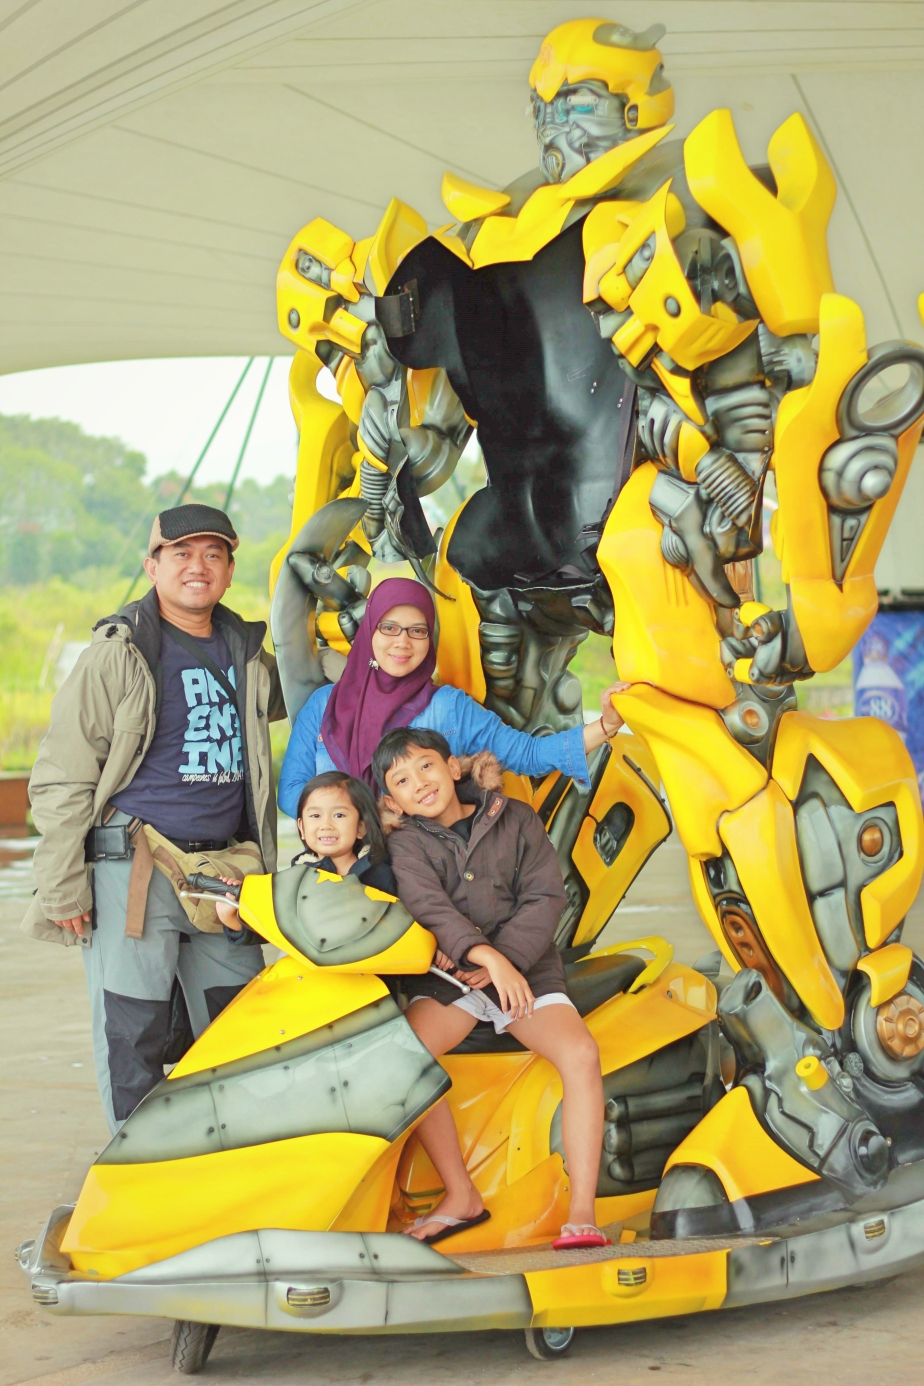 With Bumblebee